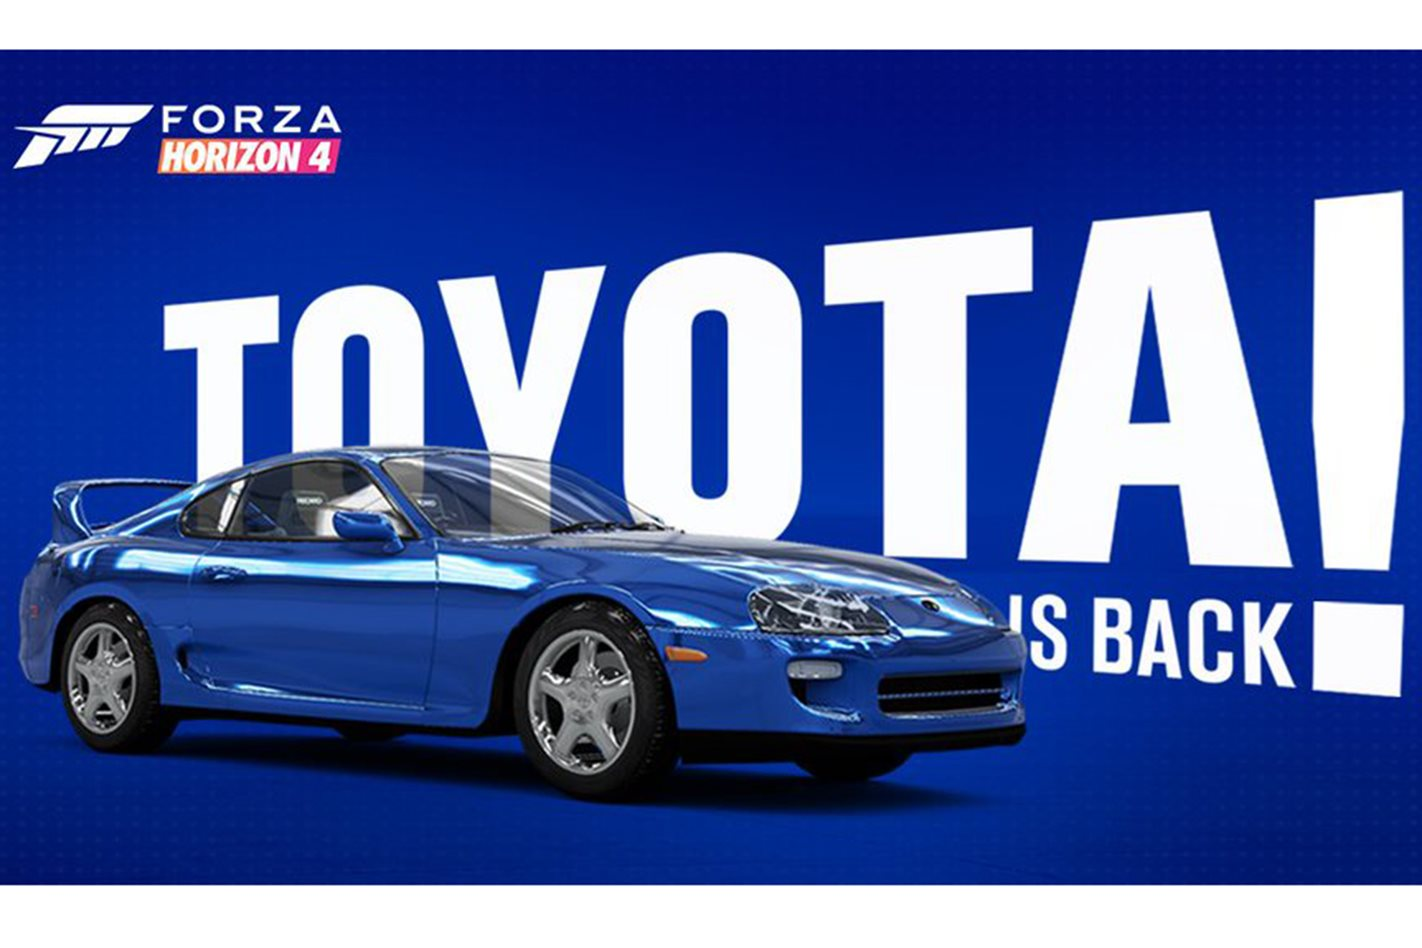 Toyota heads back to Forza with Mk4 Supra